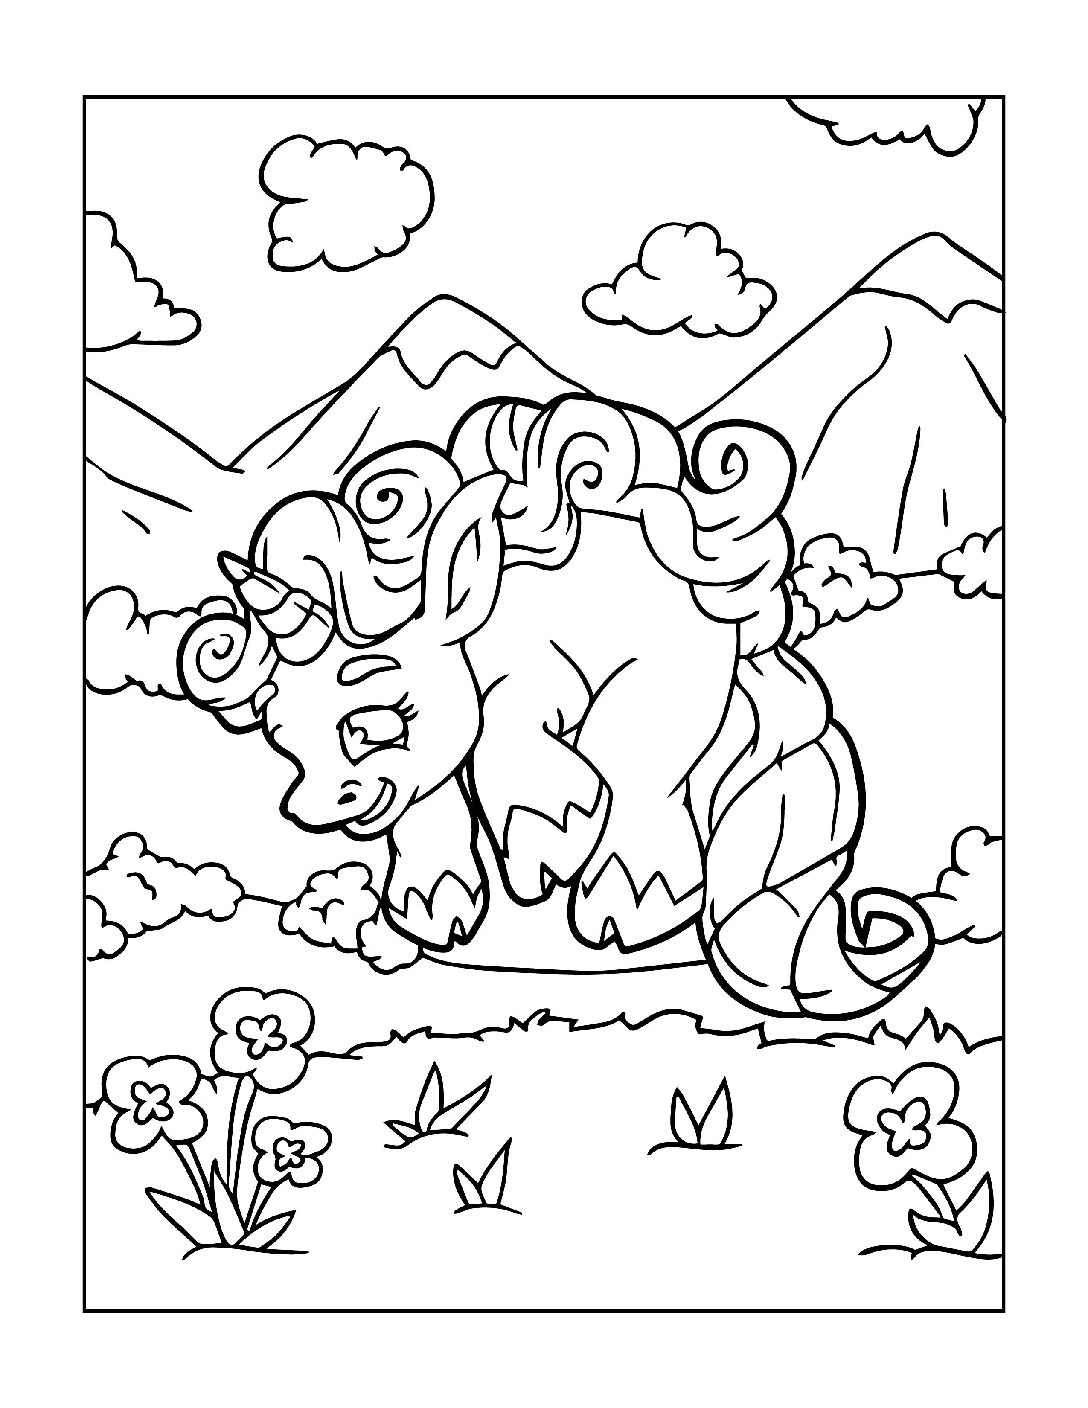 Coloring-Pages-Unicorns-4-pdf Free Printable Unicorn Colouring Pages